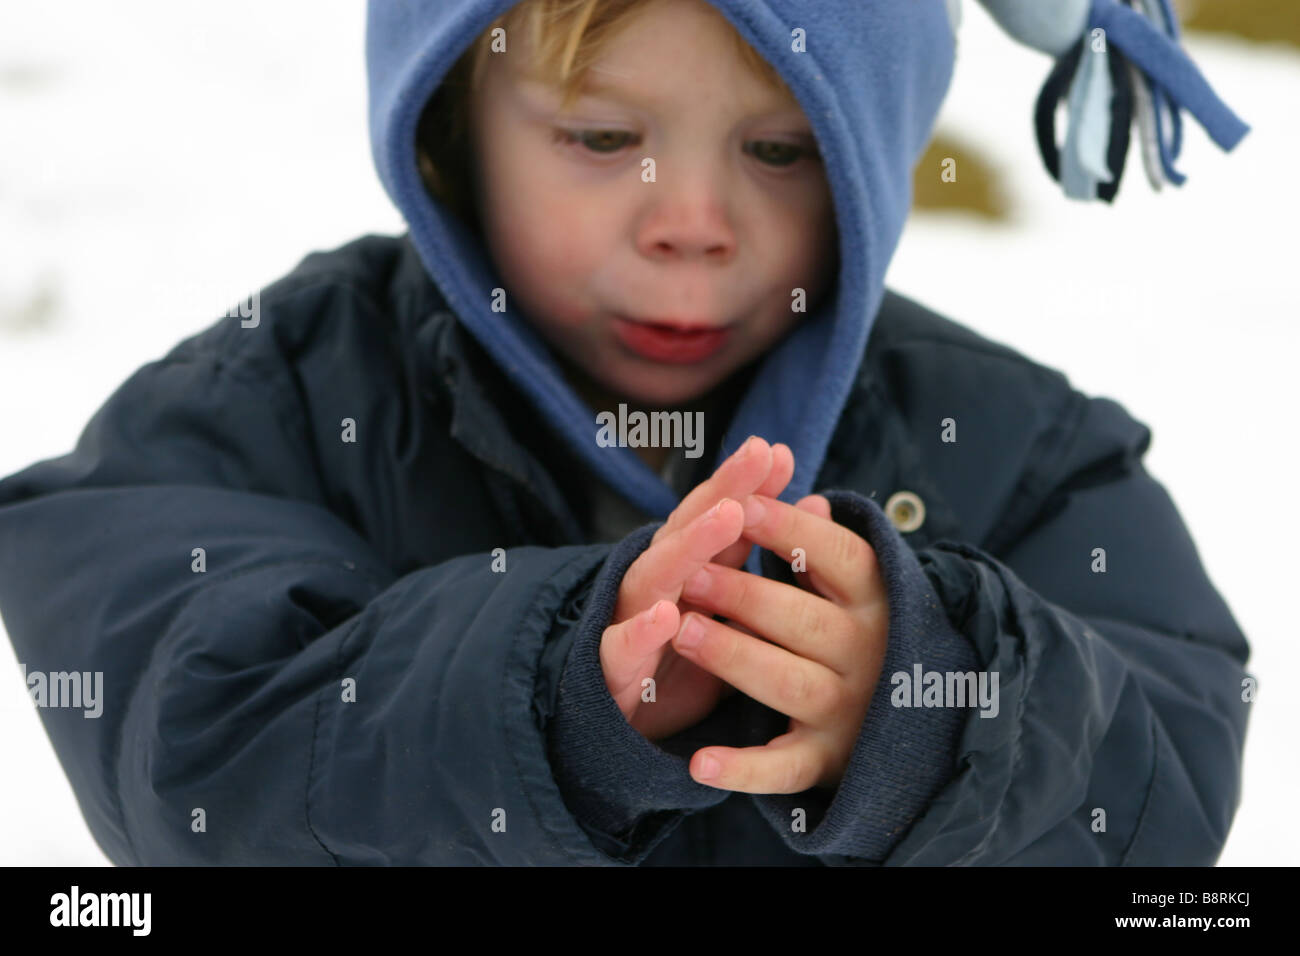 child looking at red fingers on a snowy day - Stock Image